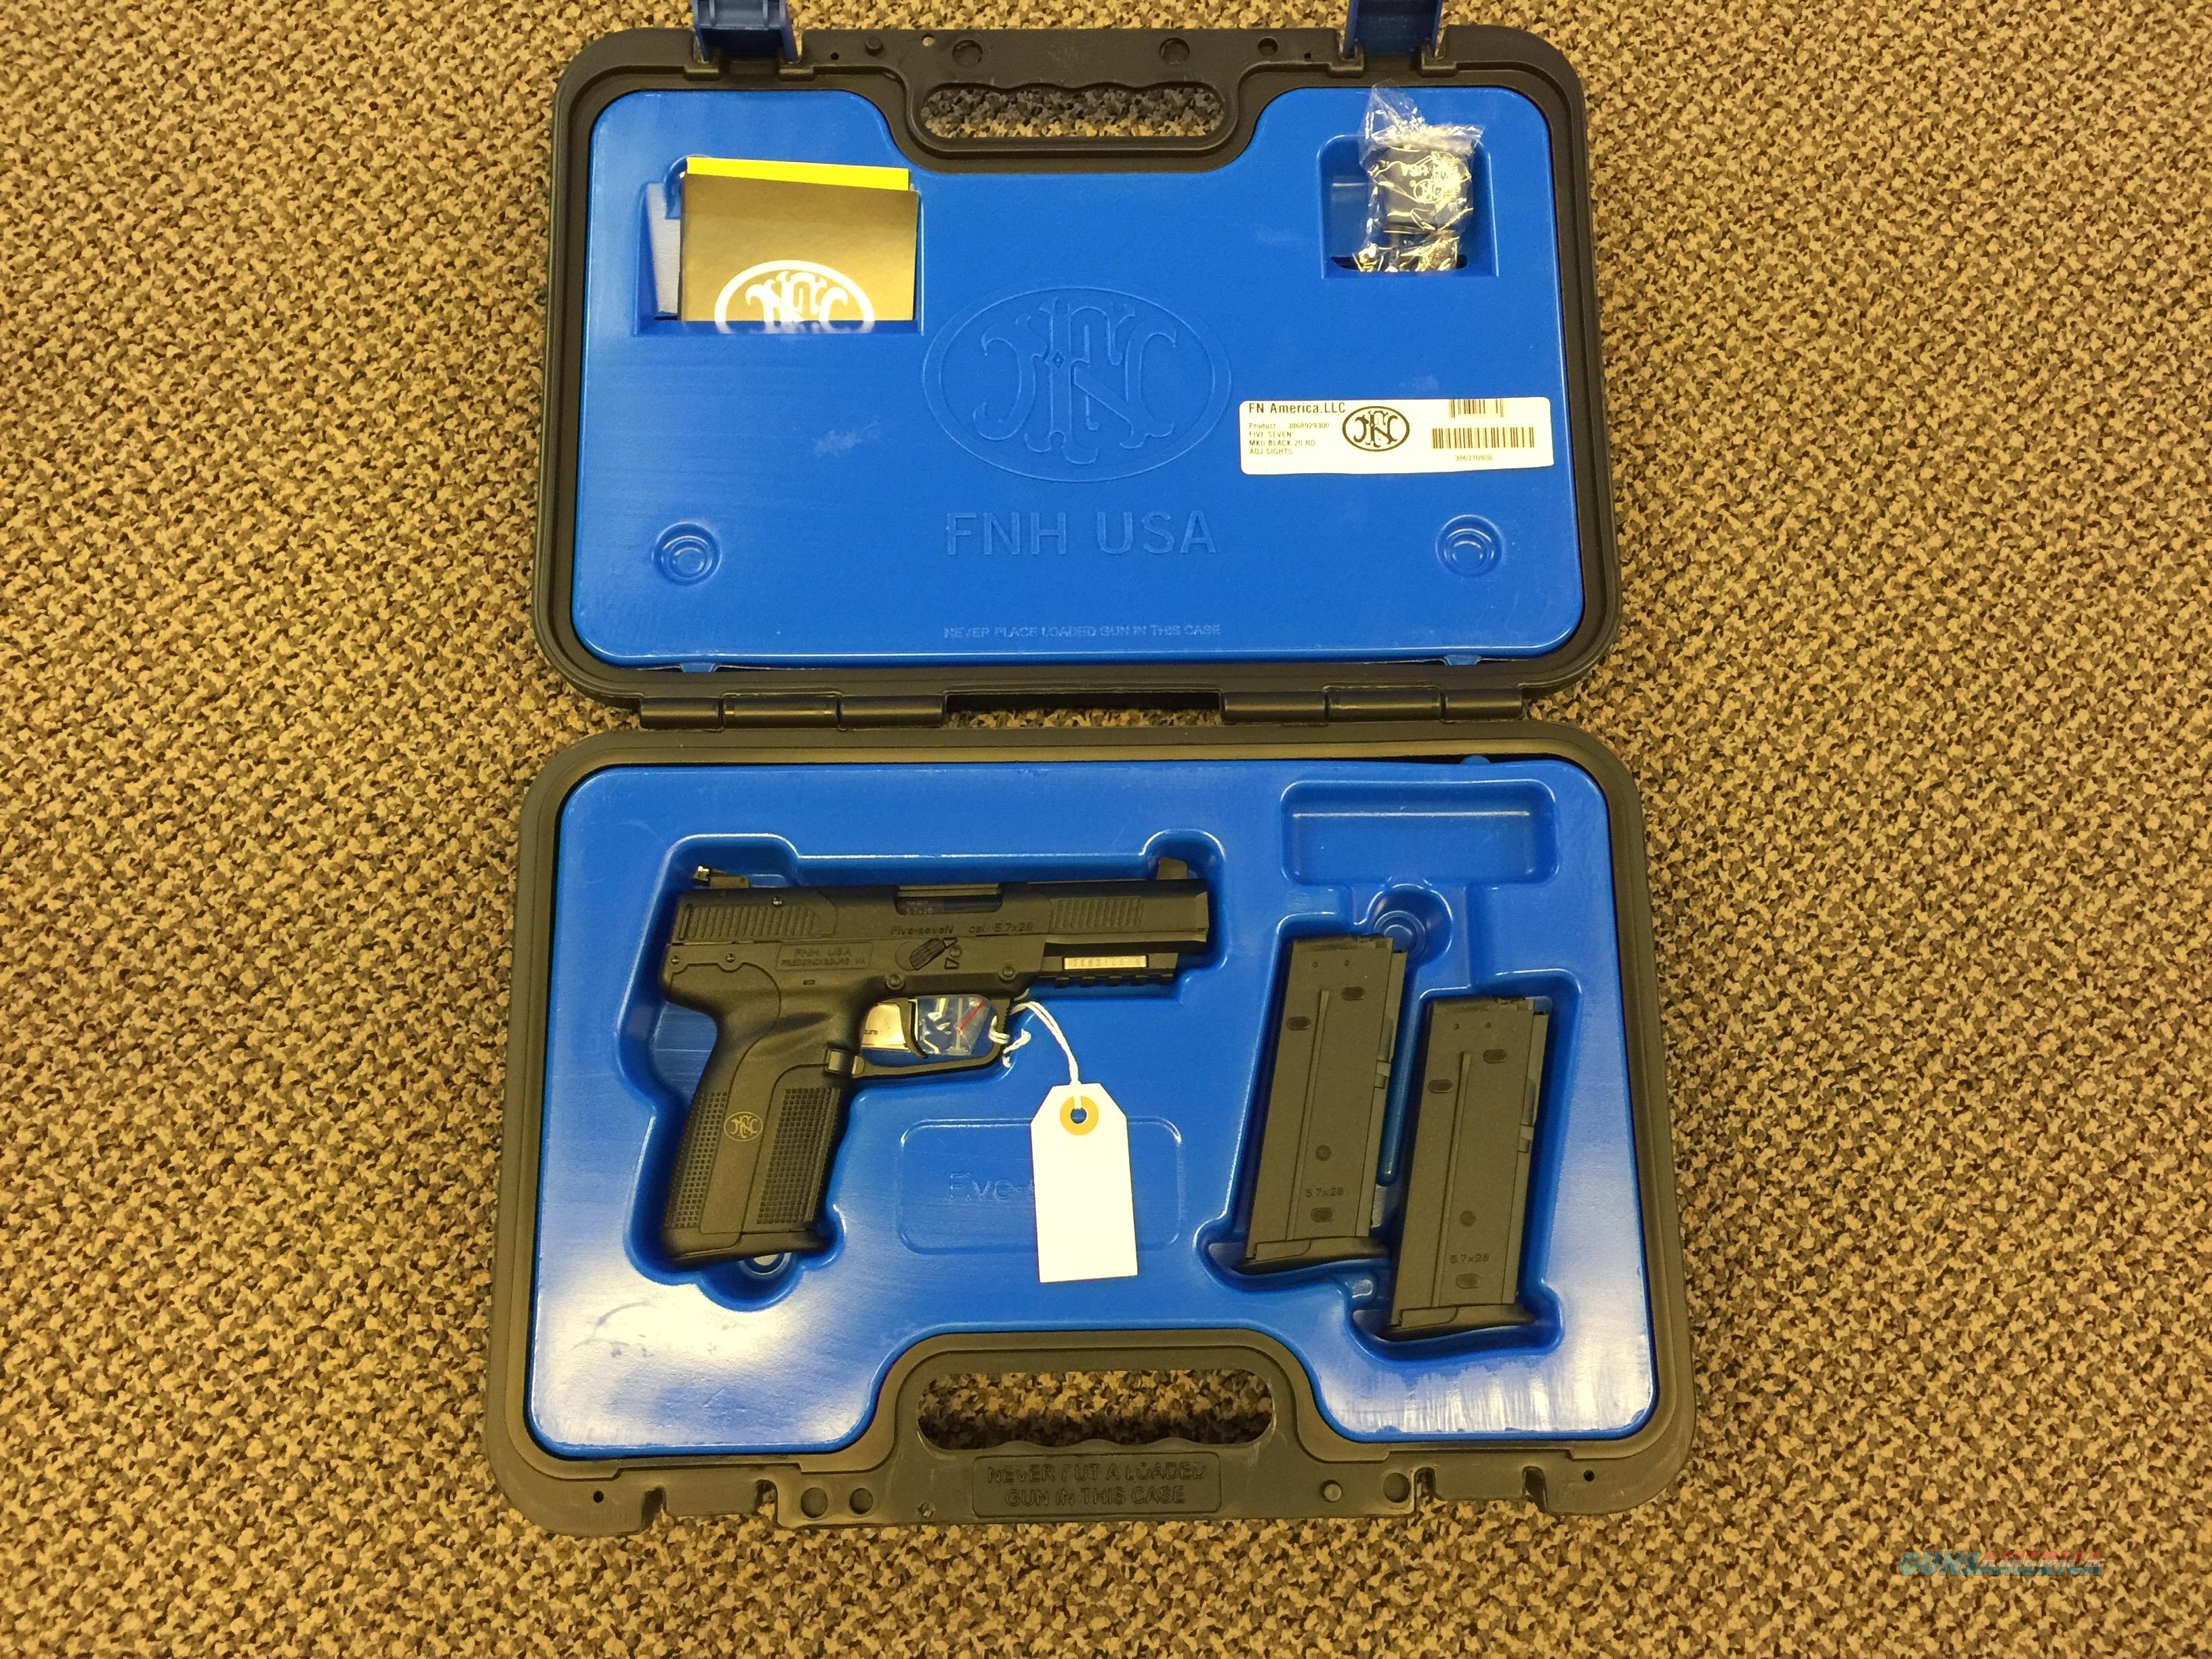 FN 5.7 PISTOL BLACK NEW IN BOX  Guns > Pistols > FNH - Fabrique Nationale (FN) Pistols > FiveSeven